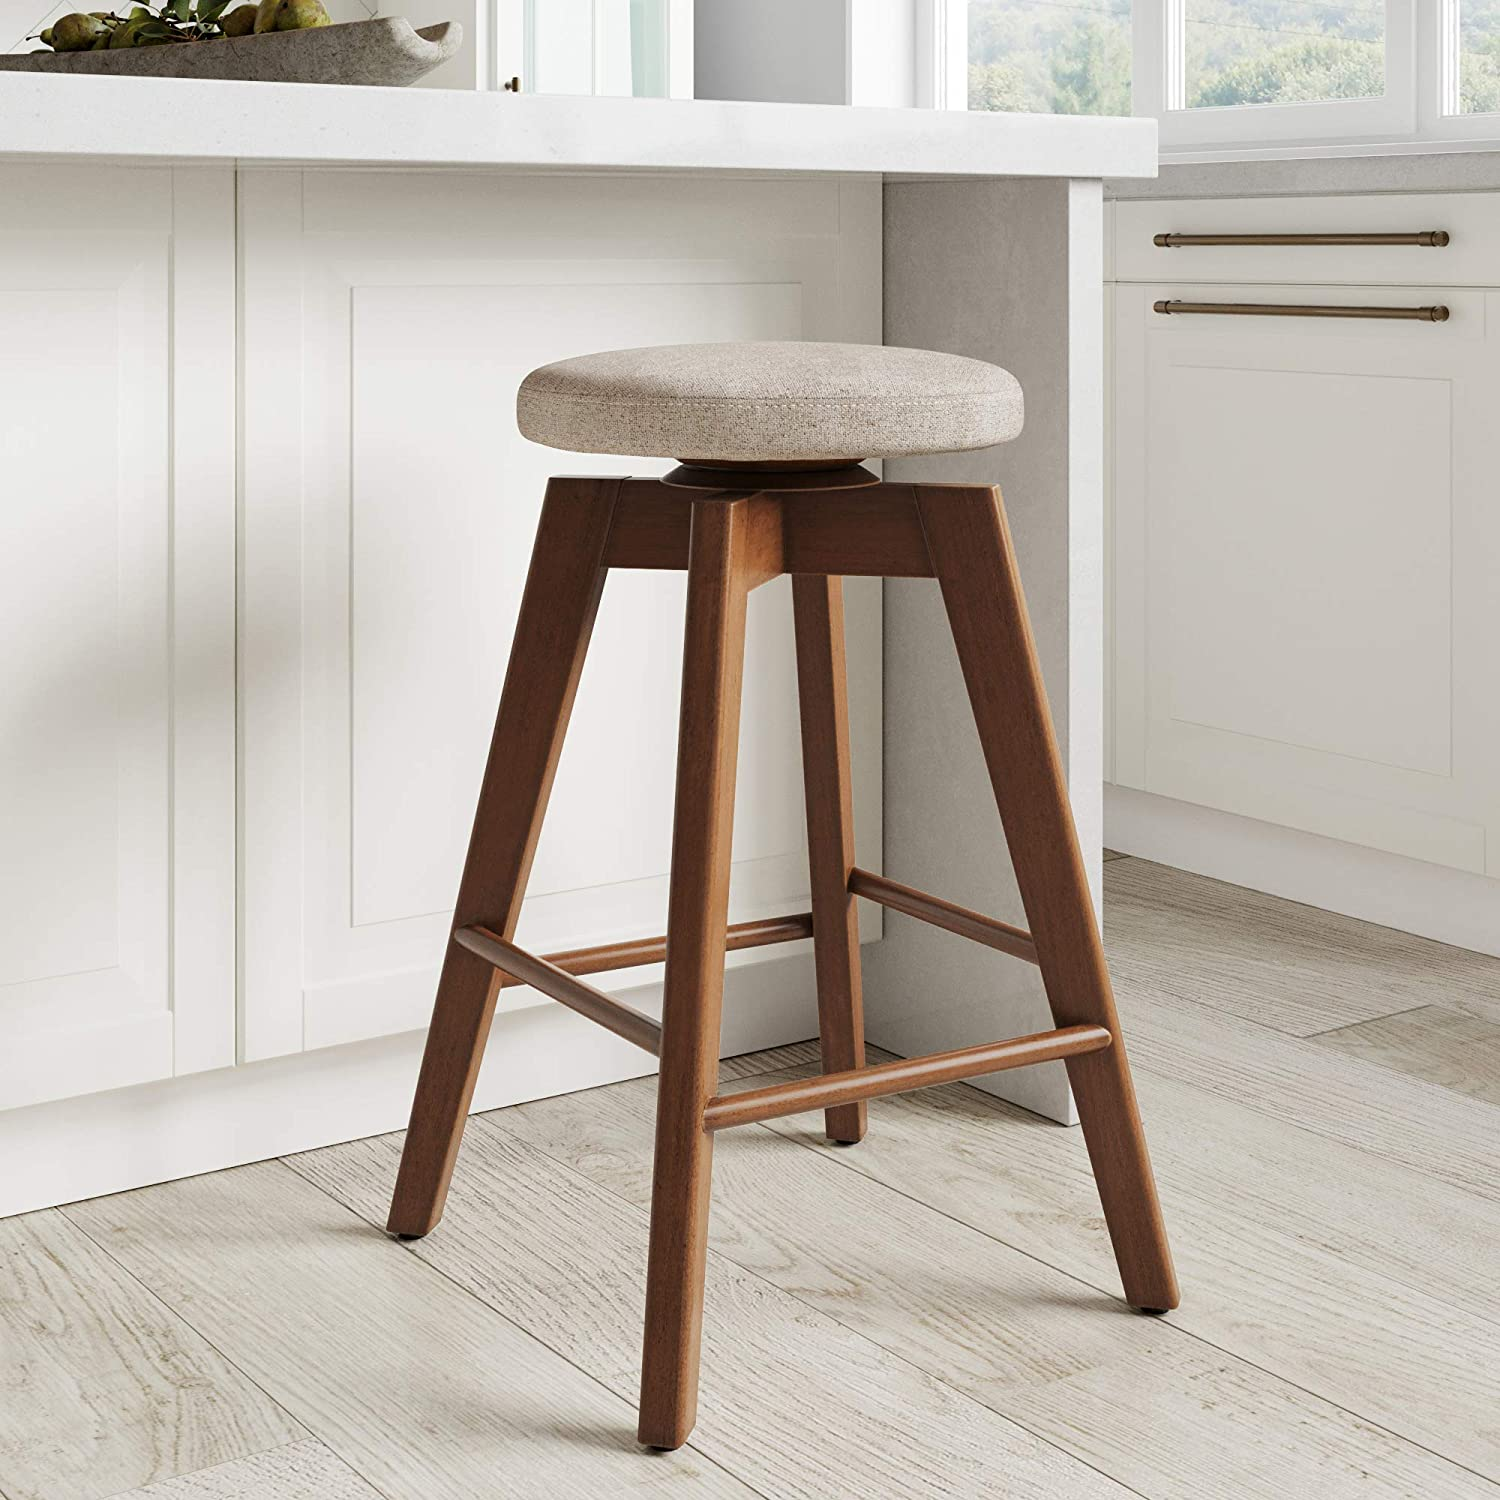 Backless Kitchen Counter Height Bar Stool